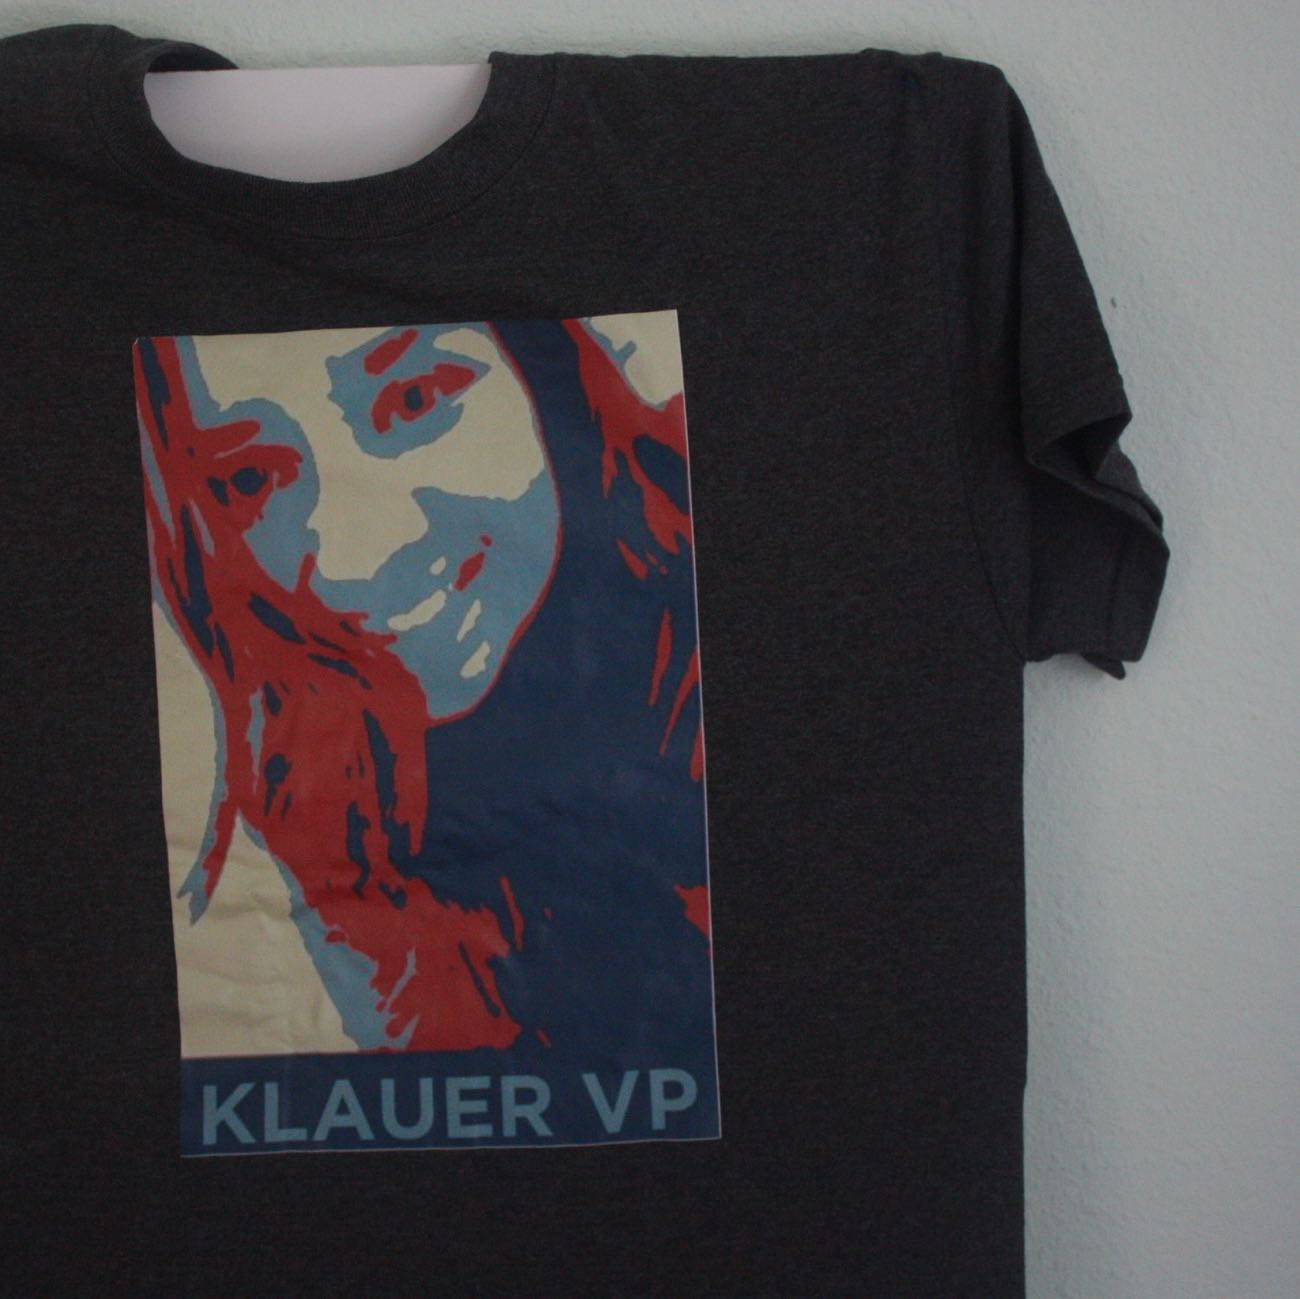 Klauer VP Automated Obama Icon Tee